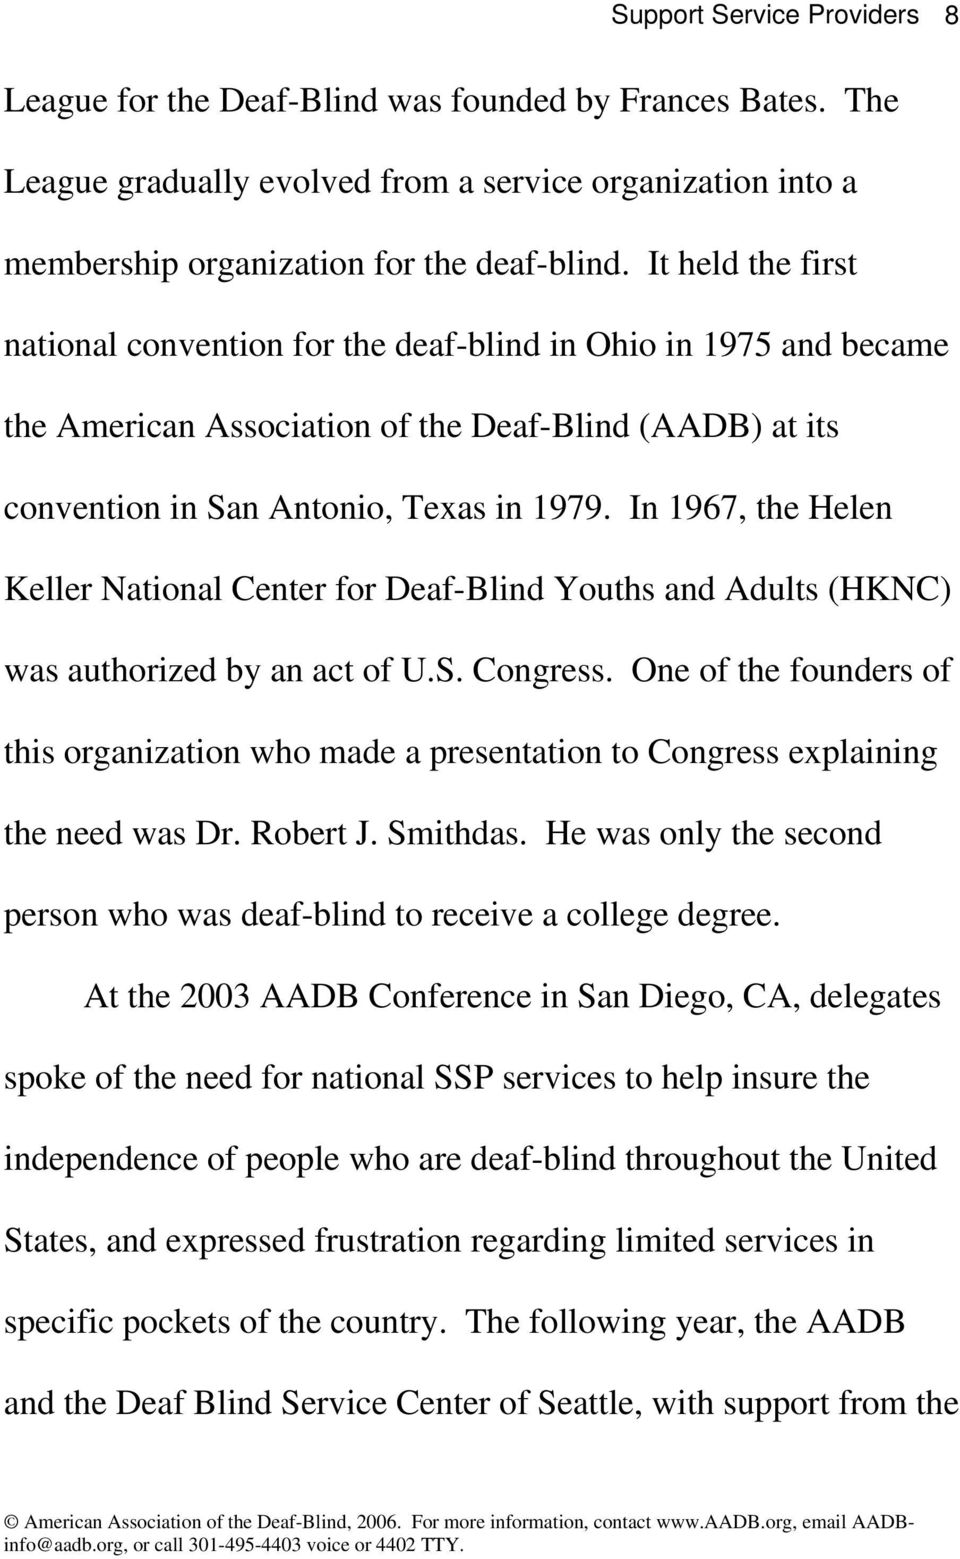 In 1967, the Helen Keller National Center for Deaf-Blind Youths and Adults (HKNC) was authorized by an act of U.S. Congress.